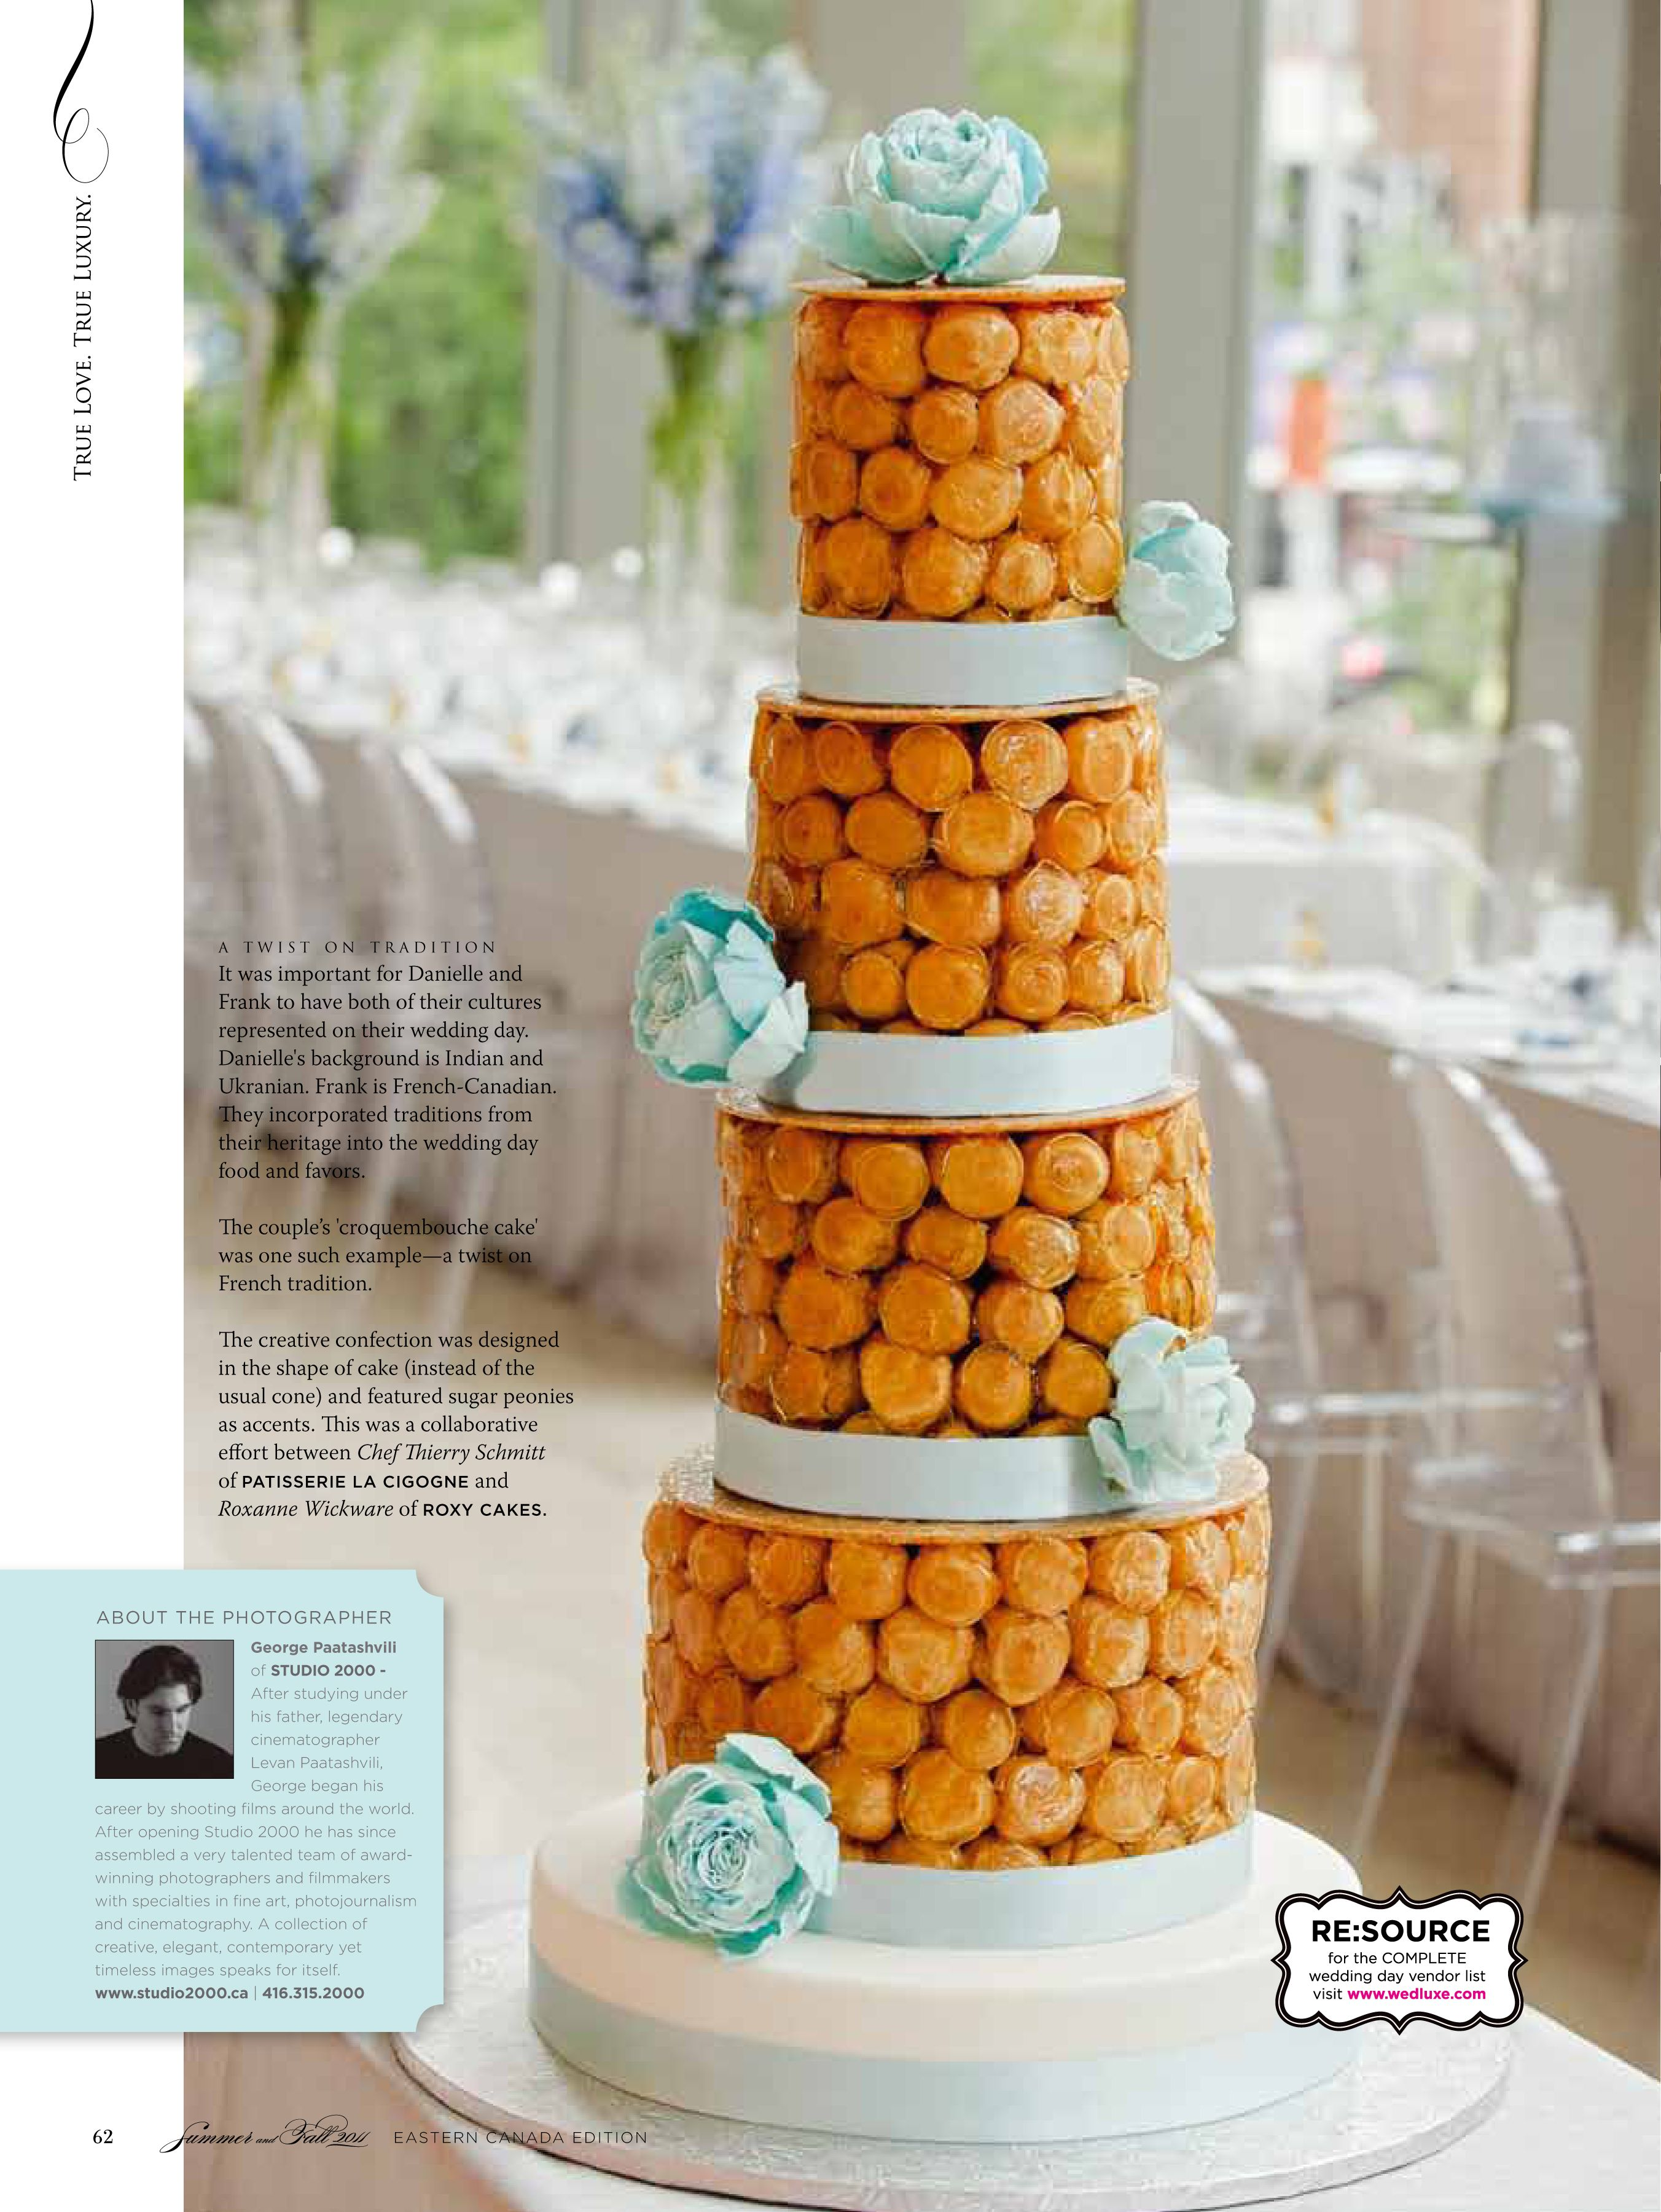 Croquembouche tower by french bakery Patisserie La